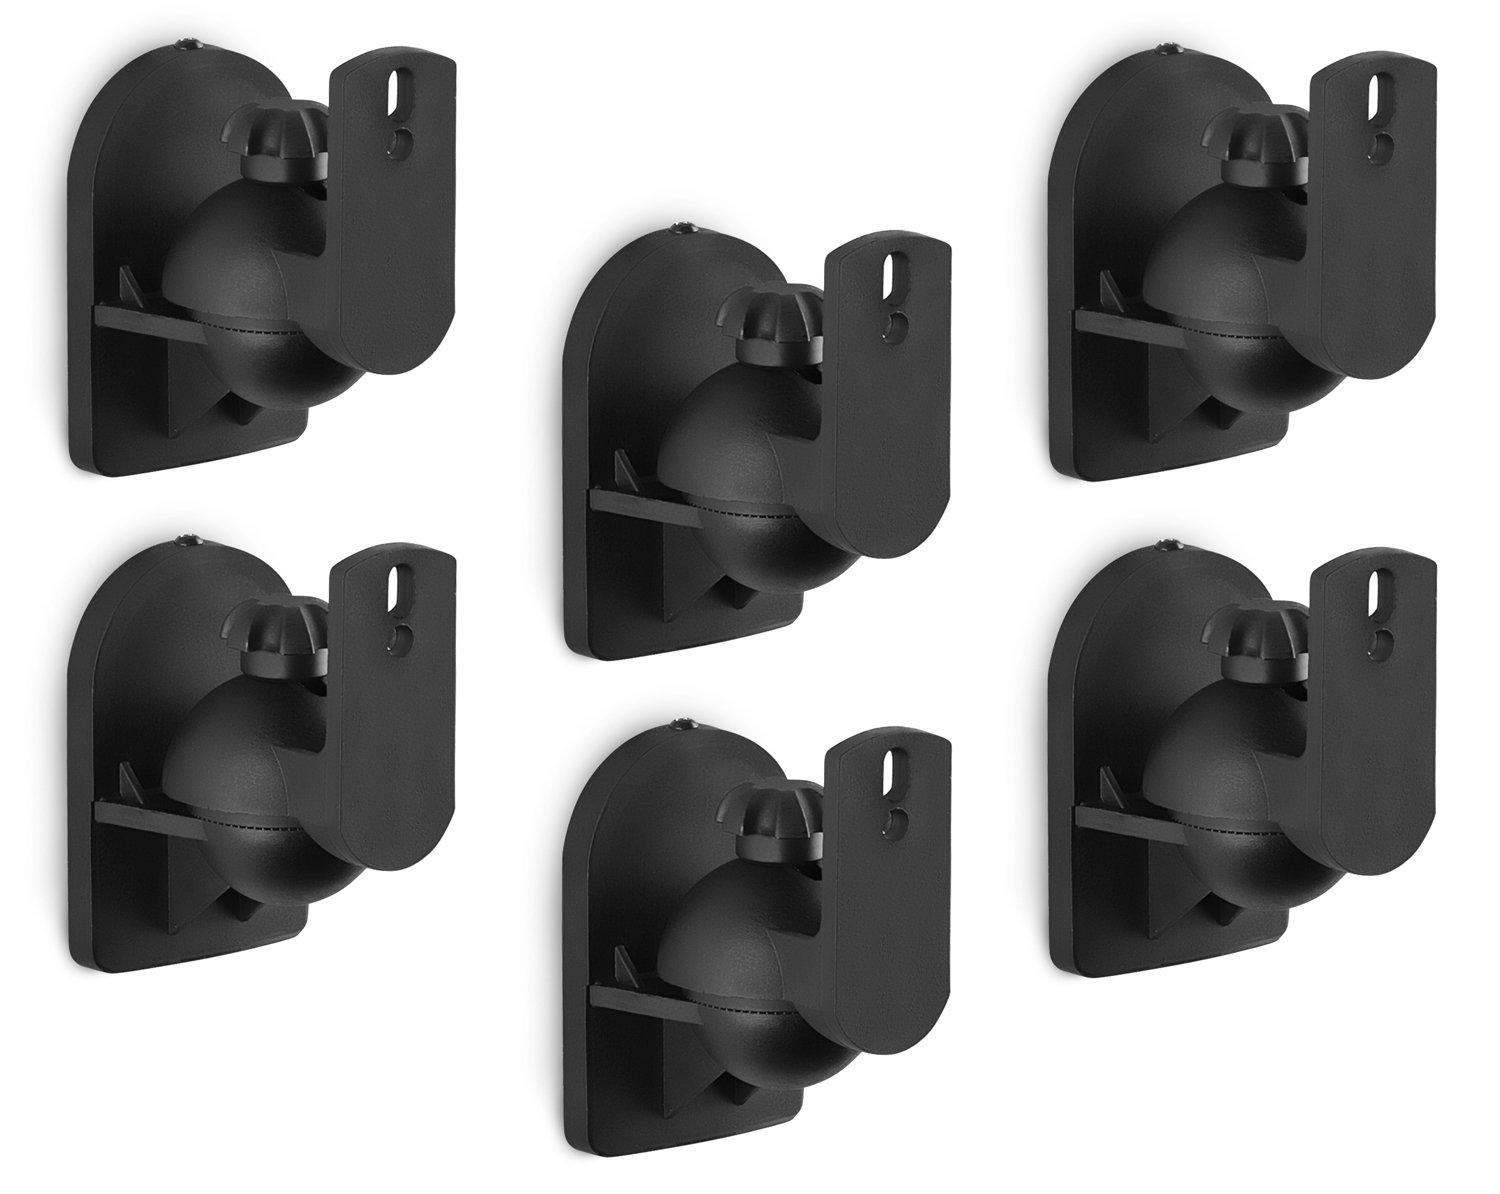 Mount-It! Speaker Wall Mount Low Profile Universal Speaker Hi-Fi Media 5.1 Channel Surround Sound Audio, Tilting, Swiveling, and Rotating, Adjustable, Ceiling and Wall Mounts, 6 Mounts, Black